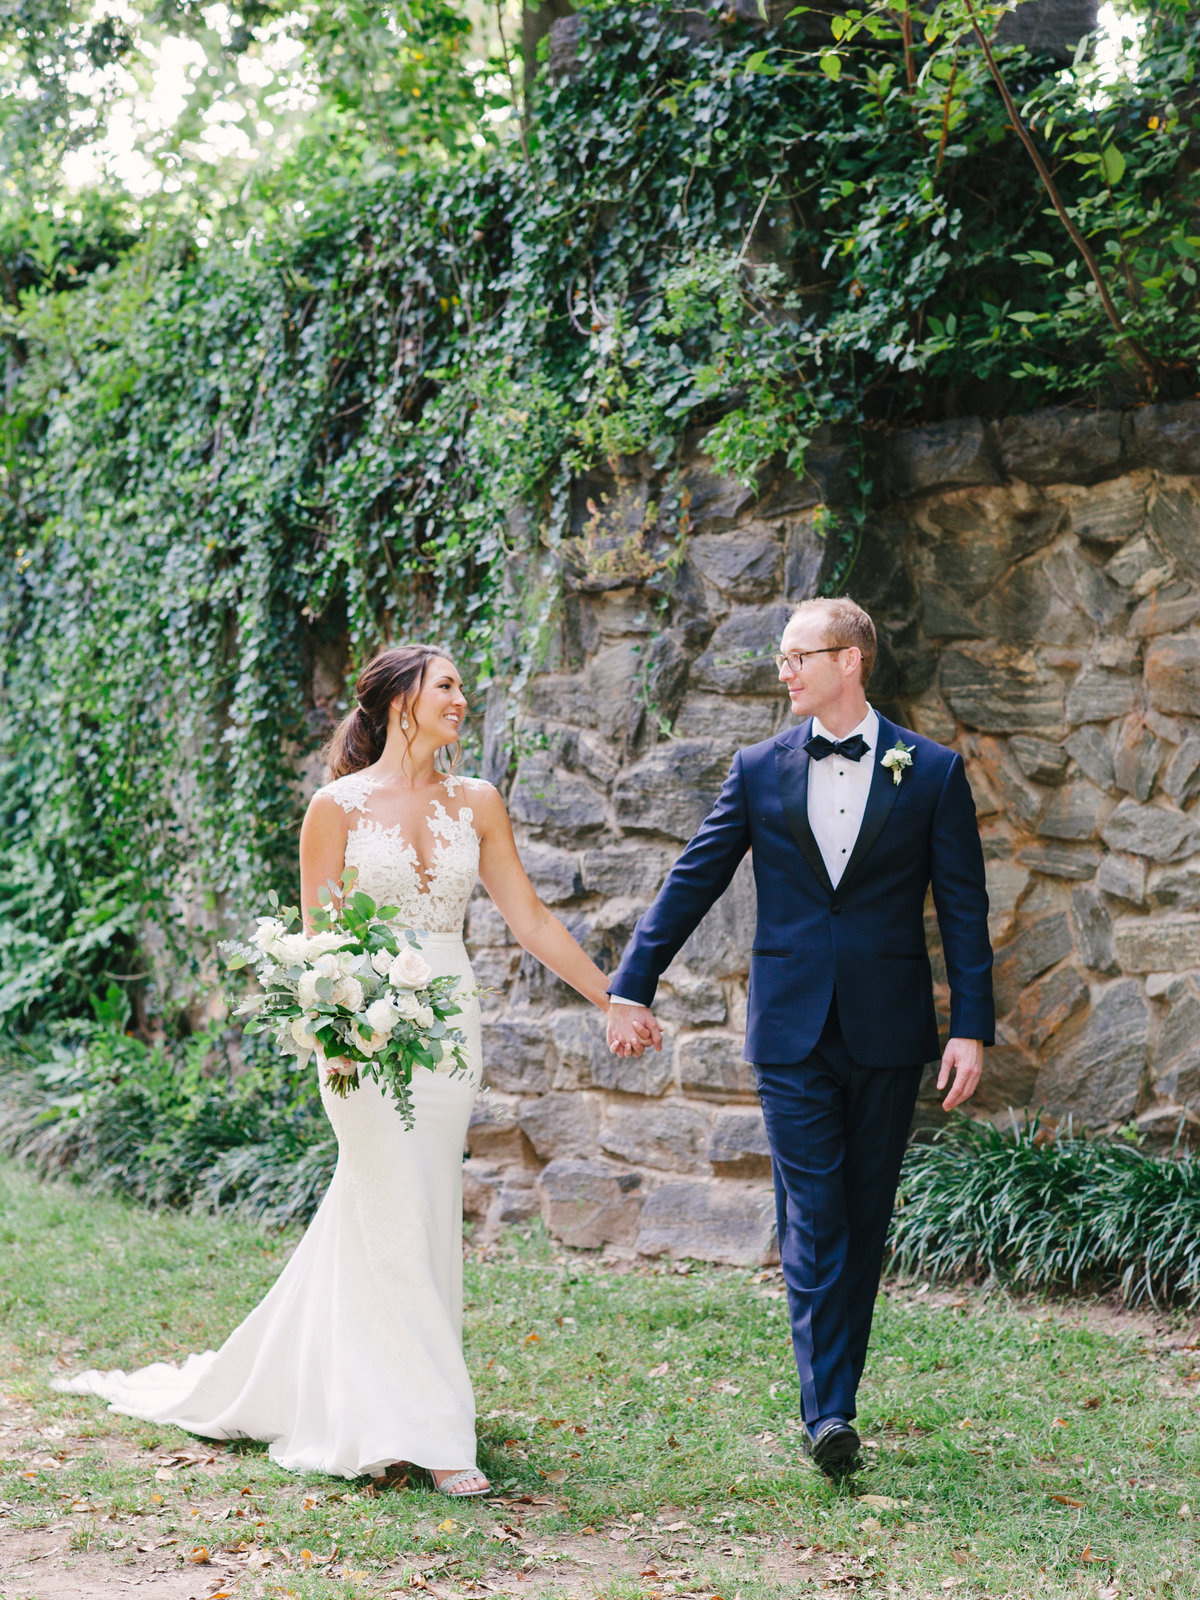 Bride & Groom walking photo in Piedmont Park